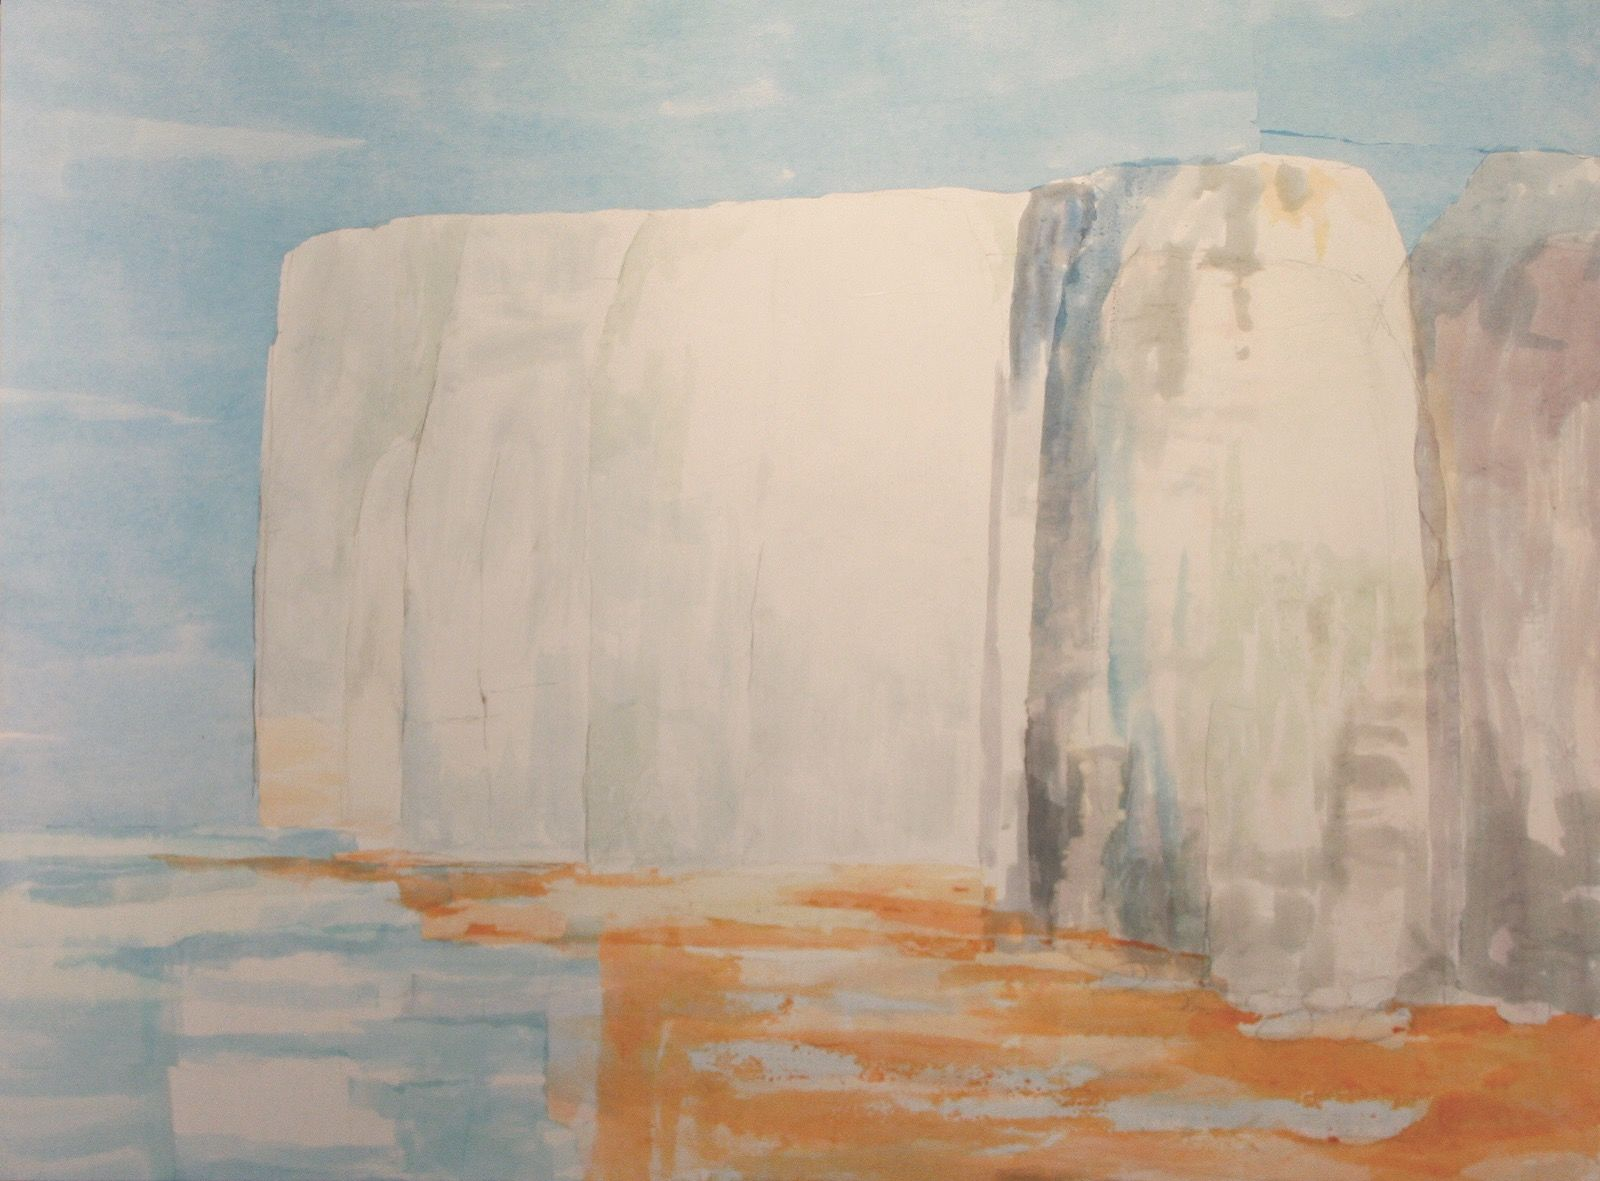 botany bay- sold